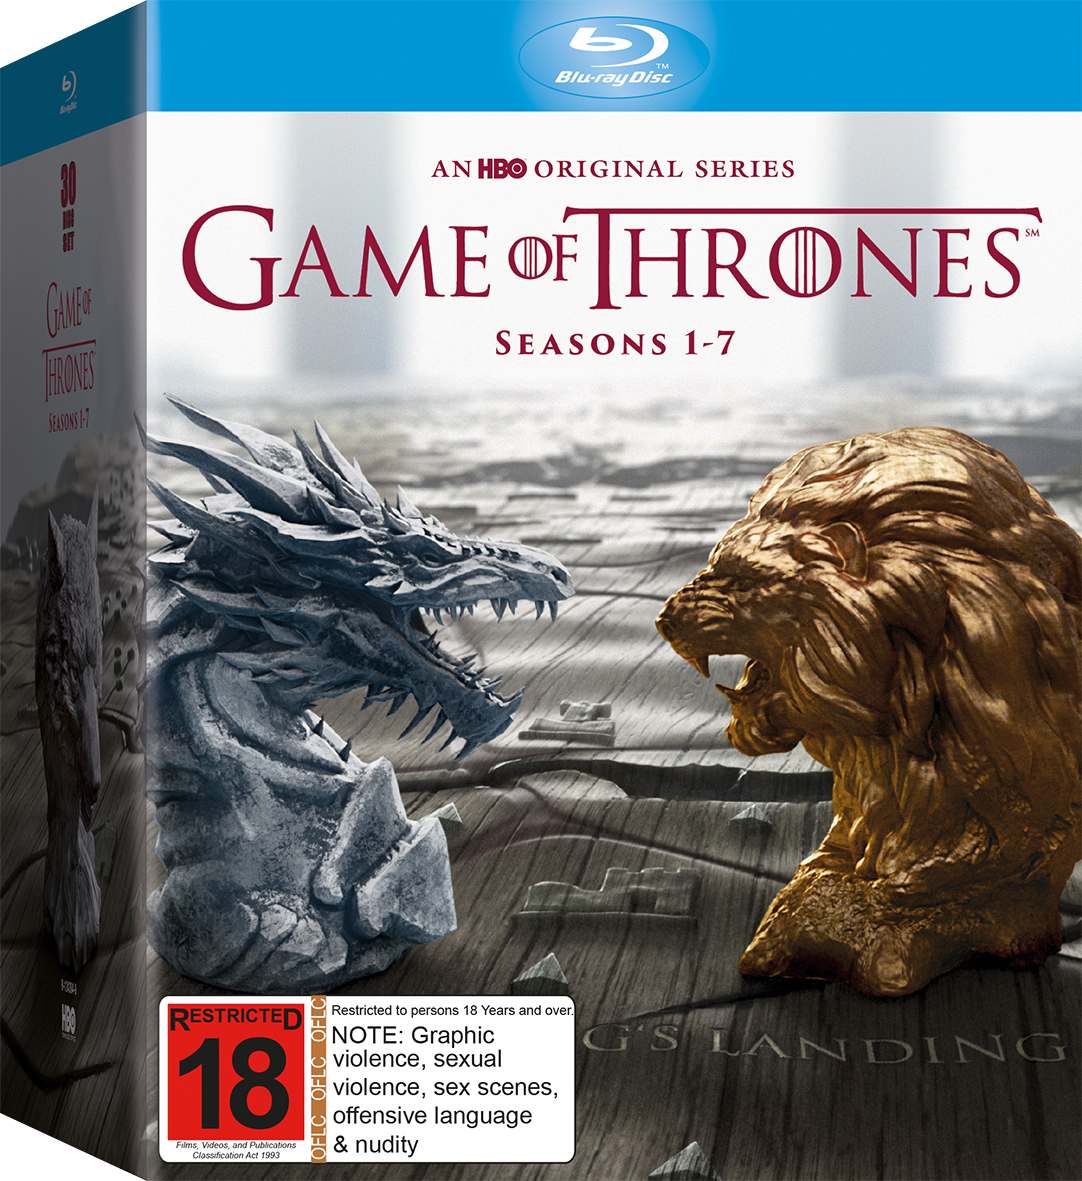 Game of Thrones - The Complete First, Second, Third, Fourth, Fifth, Sixth & Seventh Season Box Set on Blu-ray image